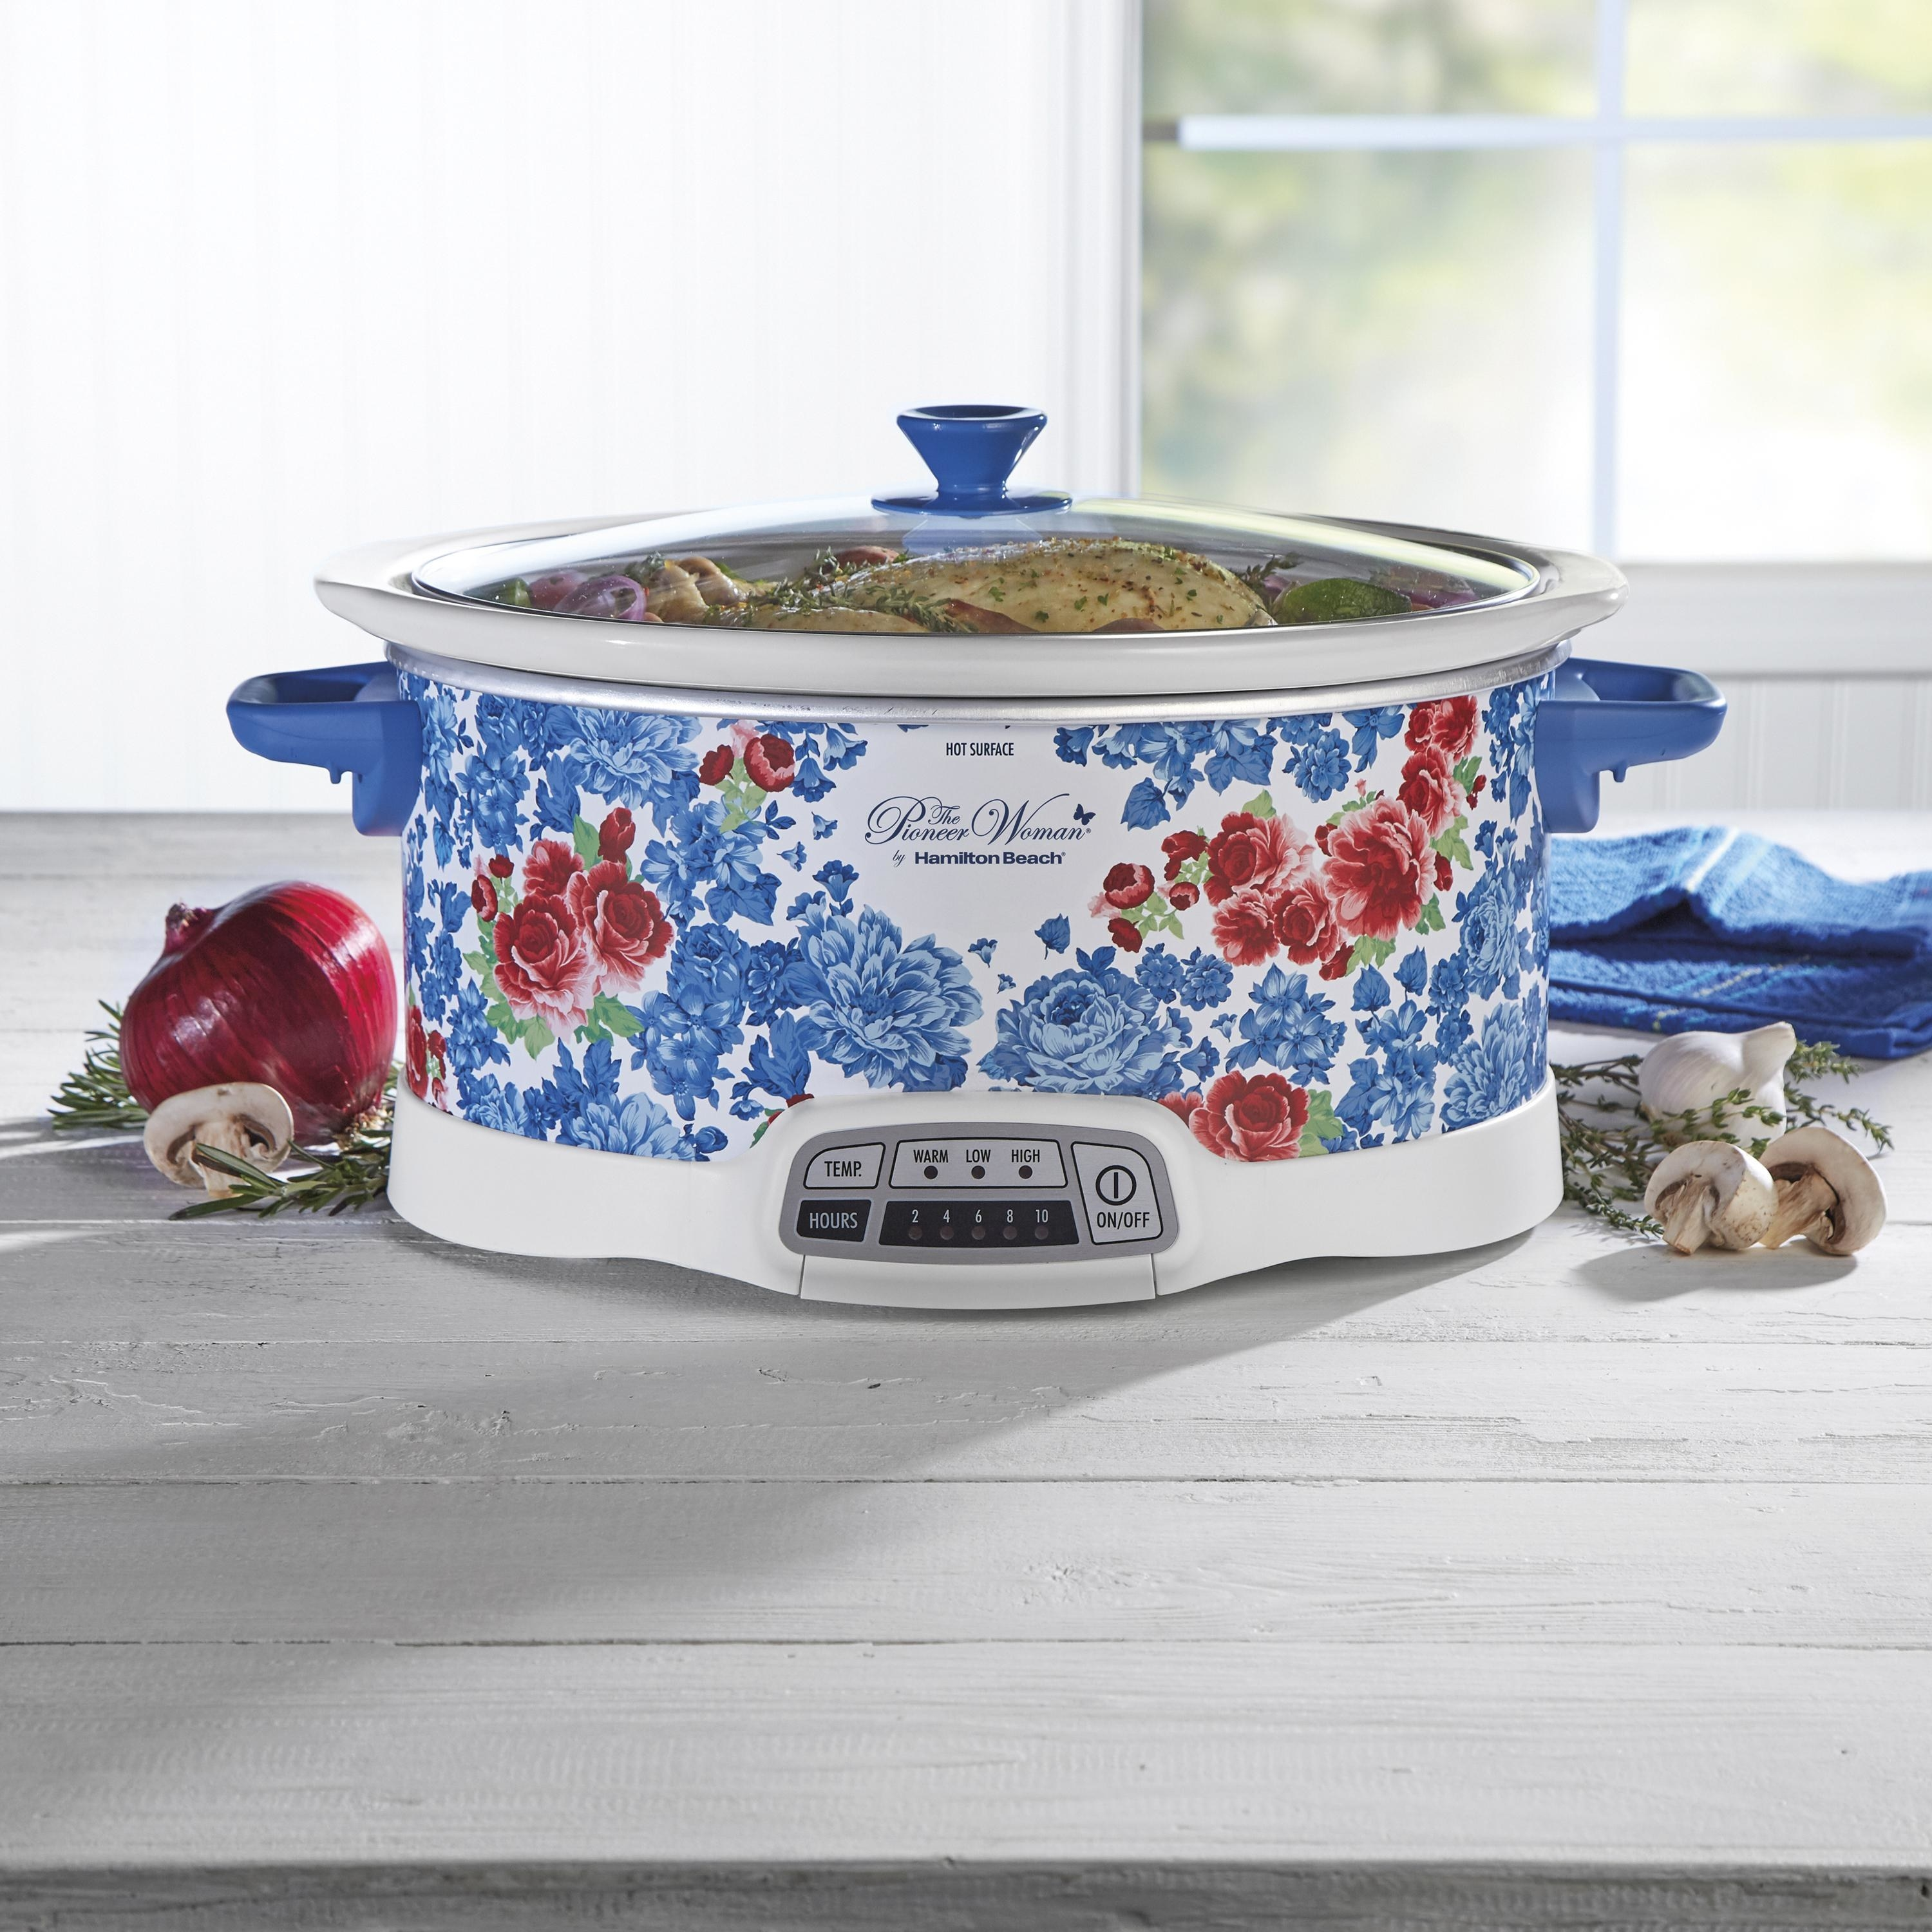 a floral patterned slow cooker cooking a chicken with an onion, mushrooms, garlic, and rosemary next to it